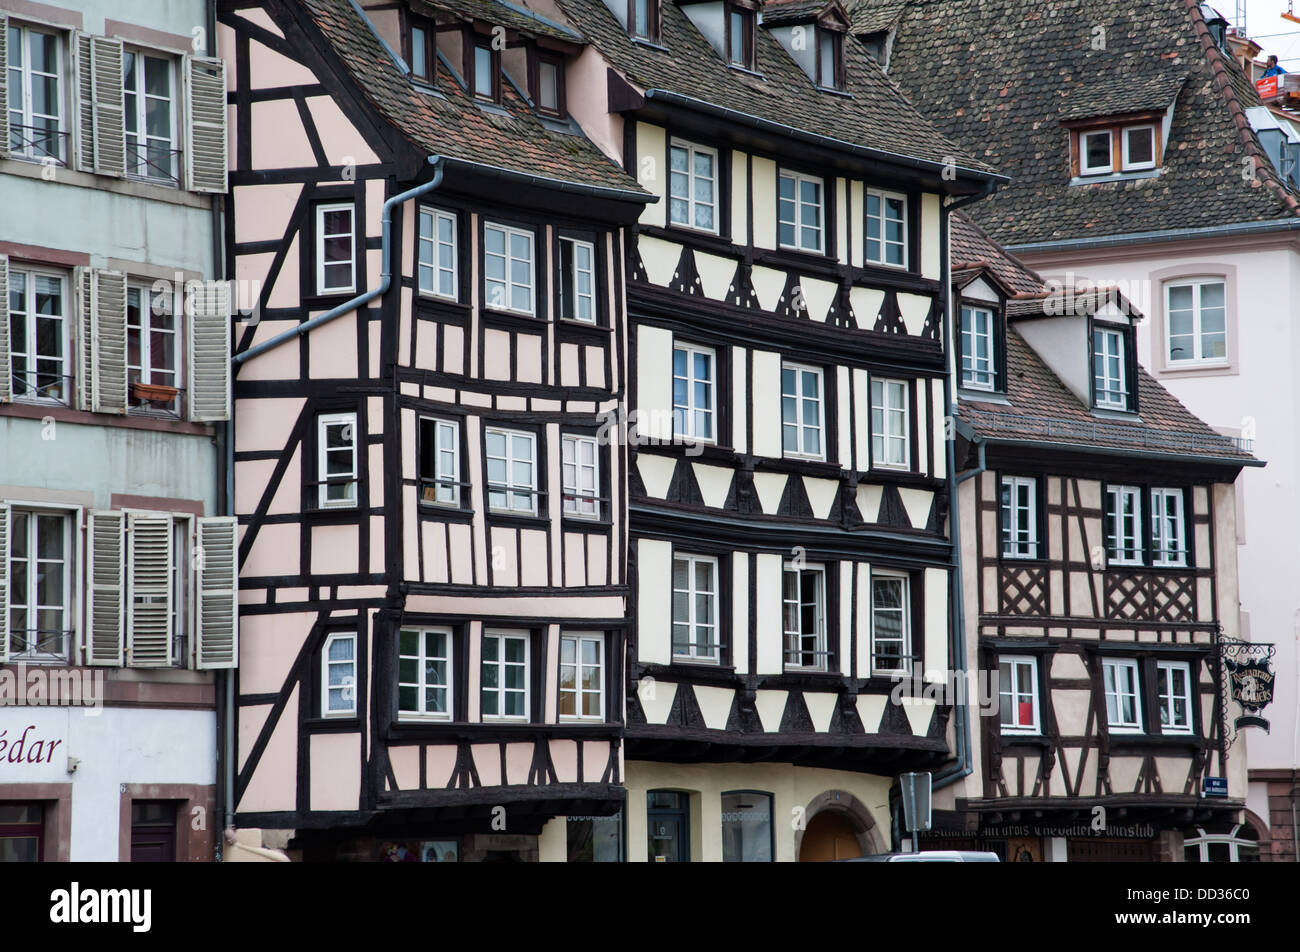 Typical post and beam architecture, Strasbourg, France. - Stock Image